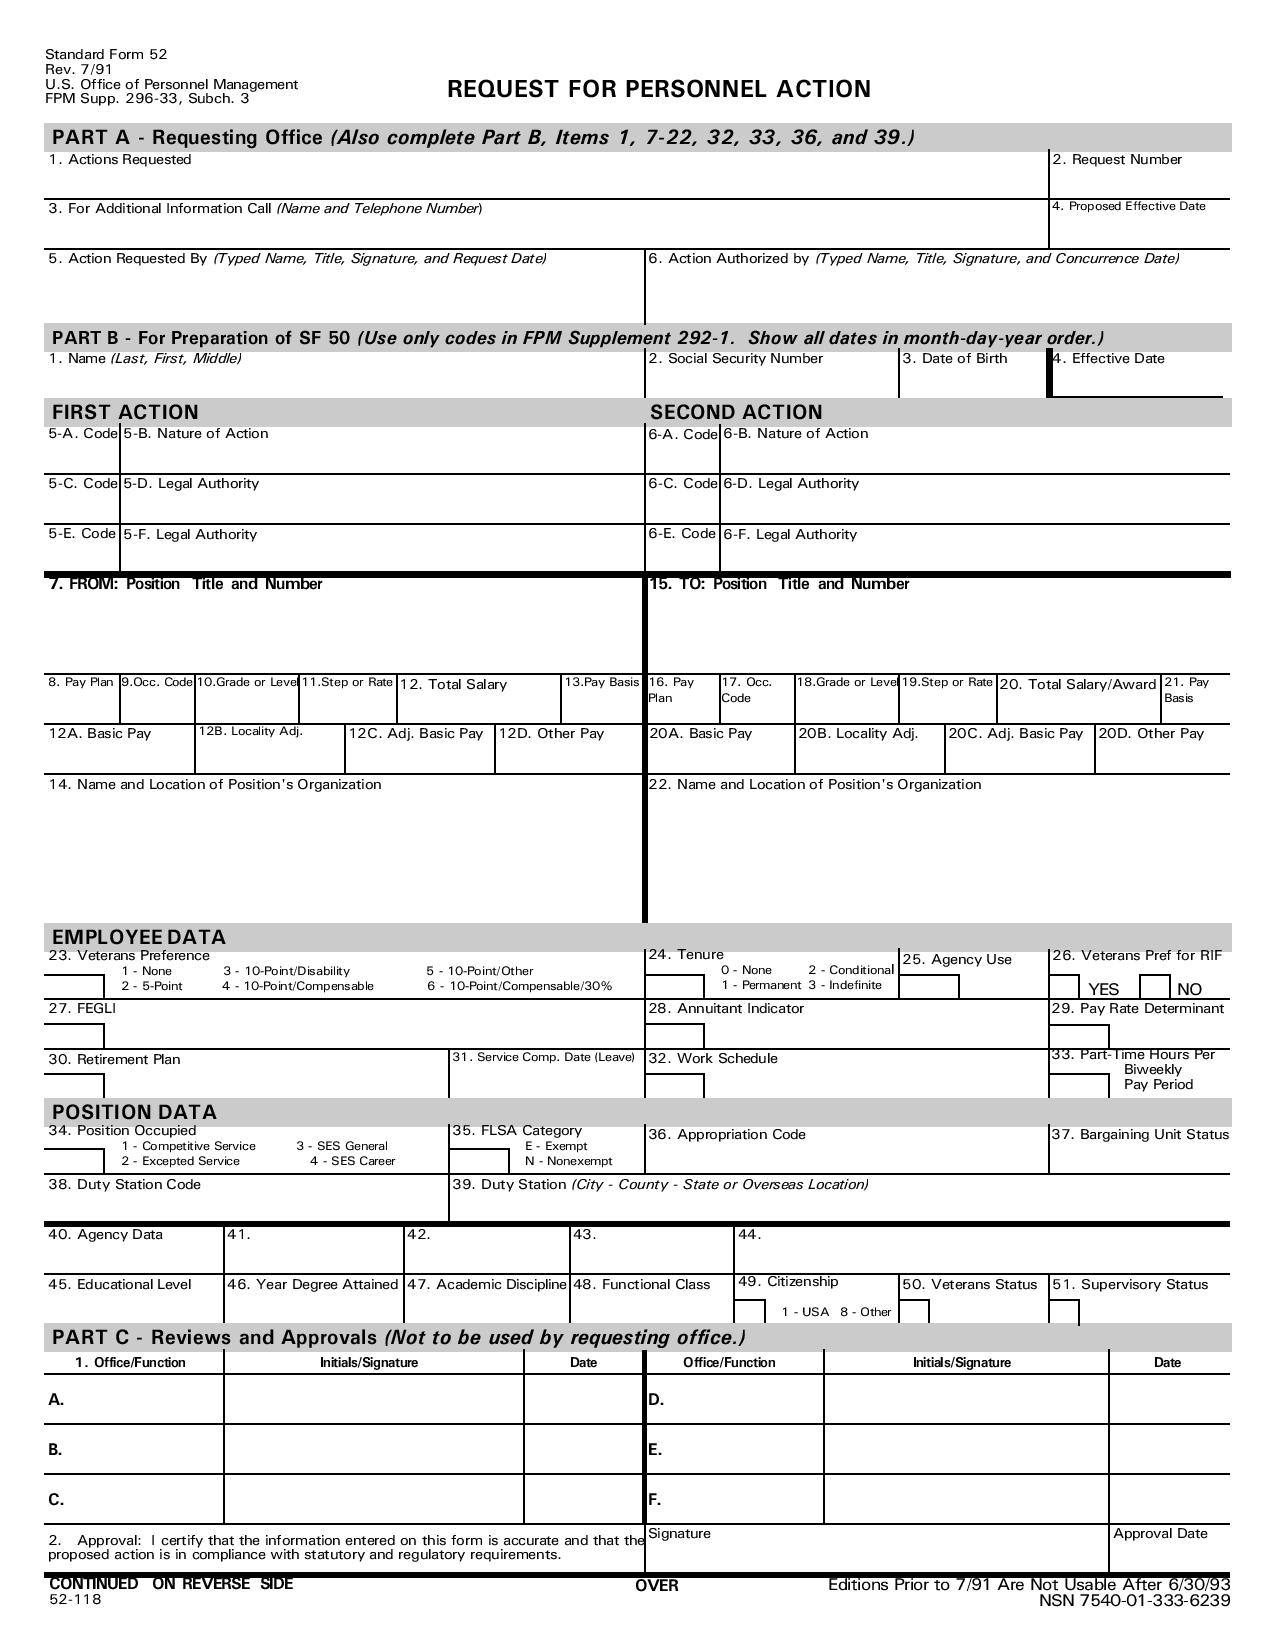 request for personnel action form paf page 001